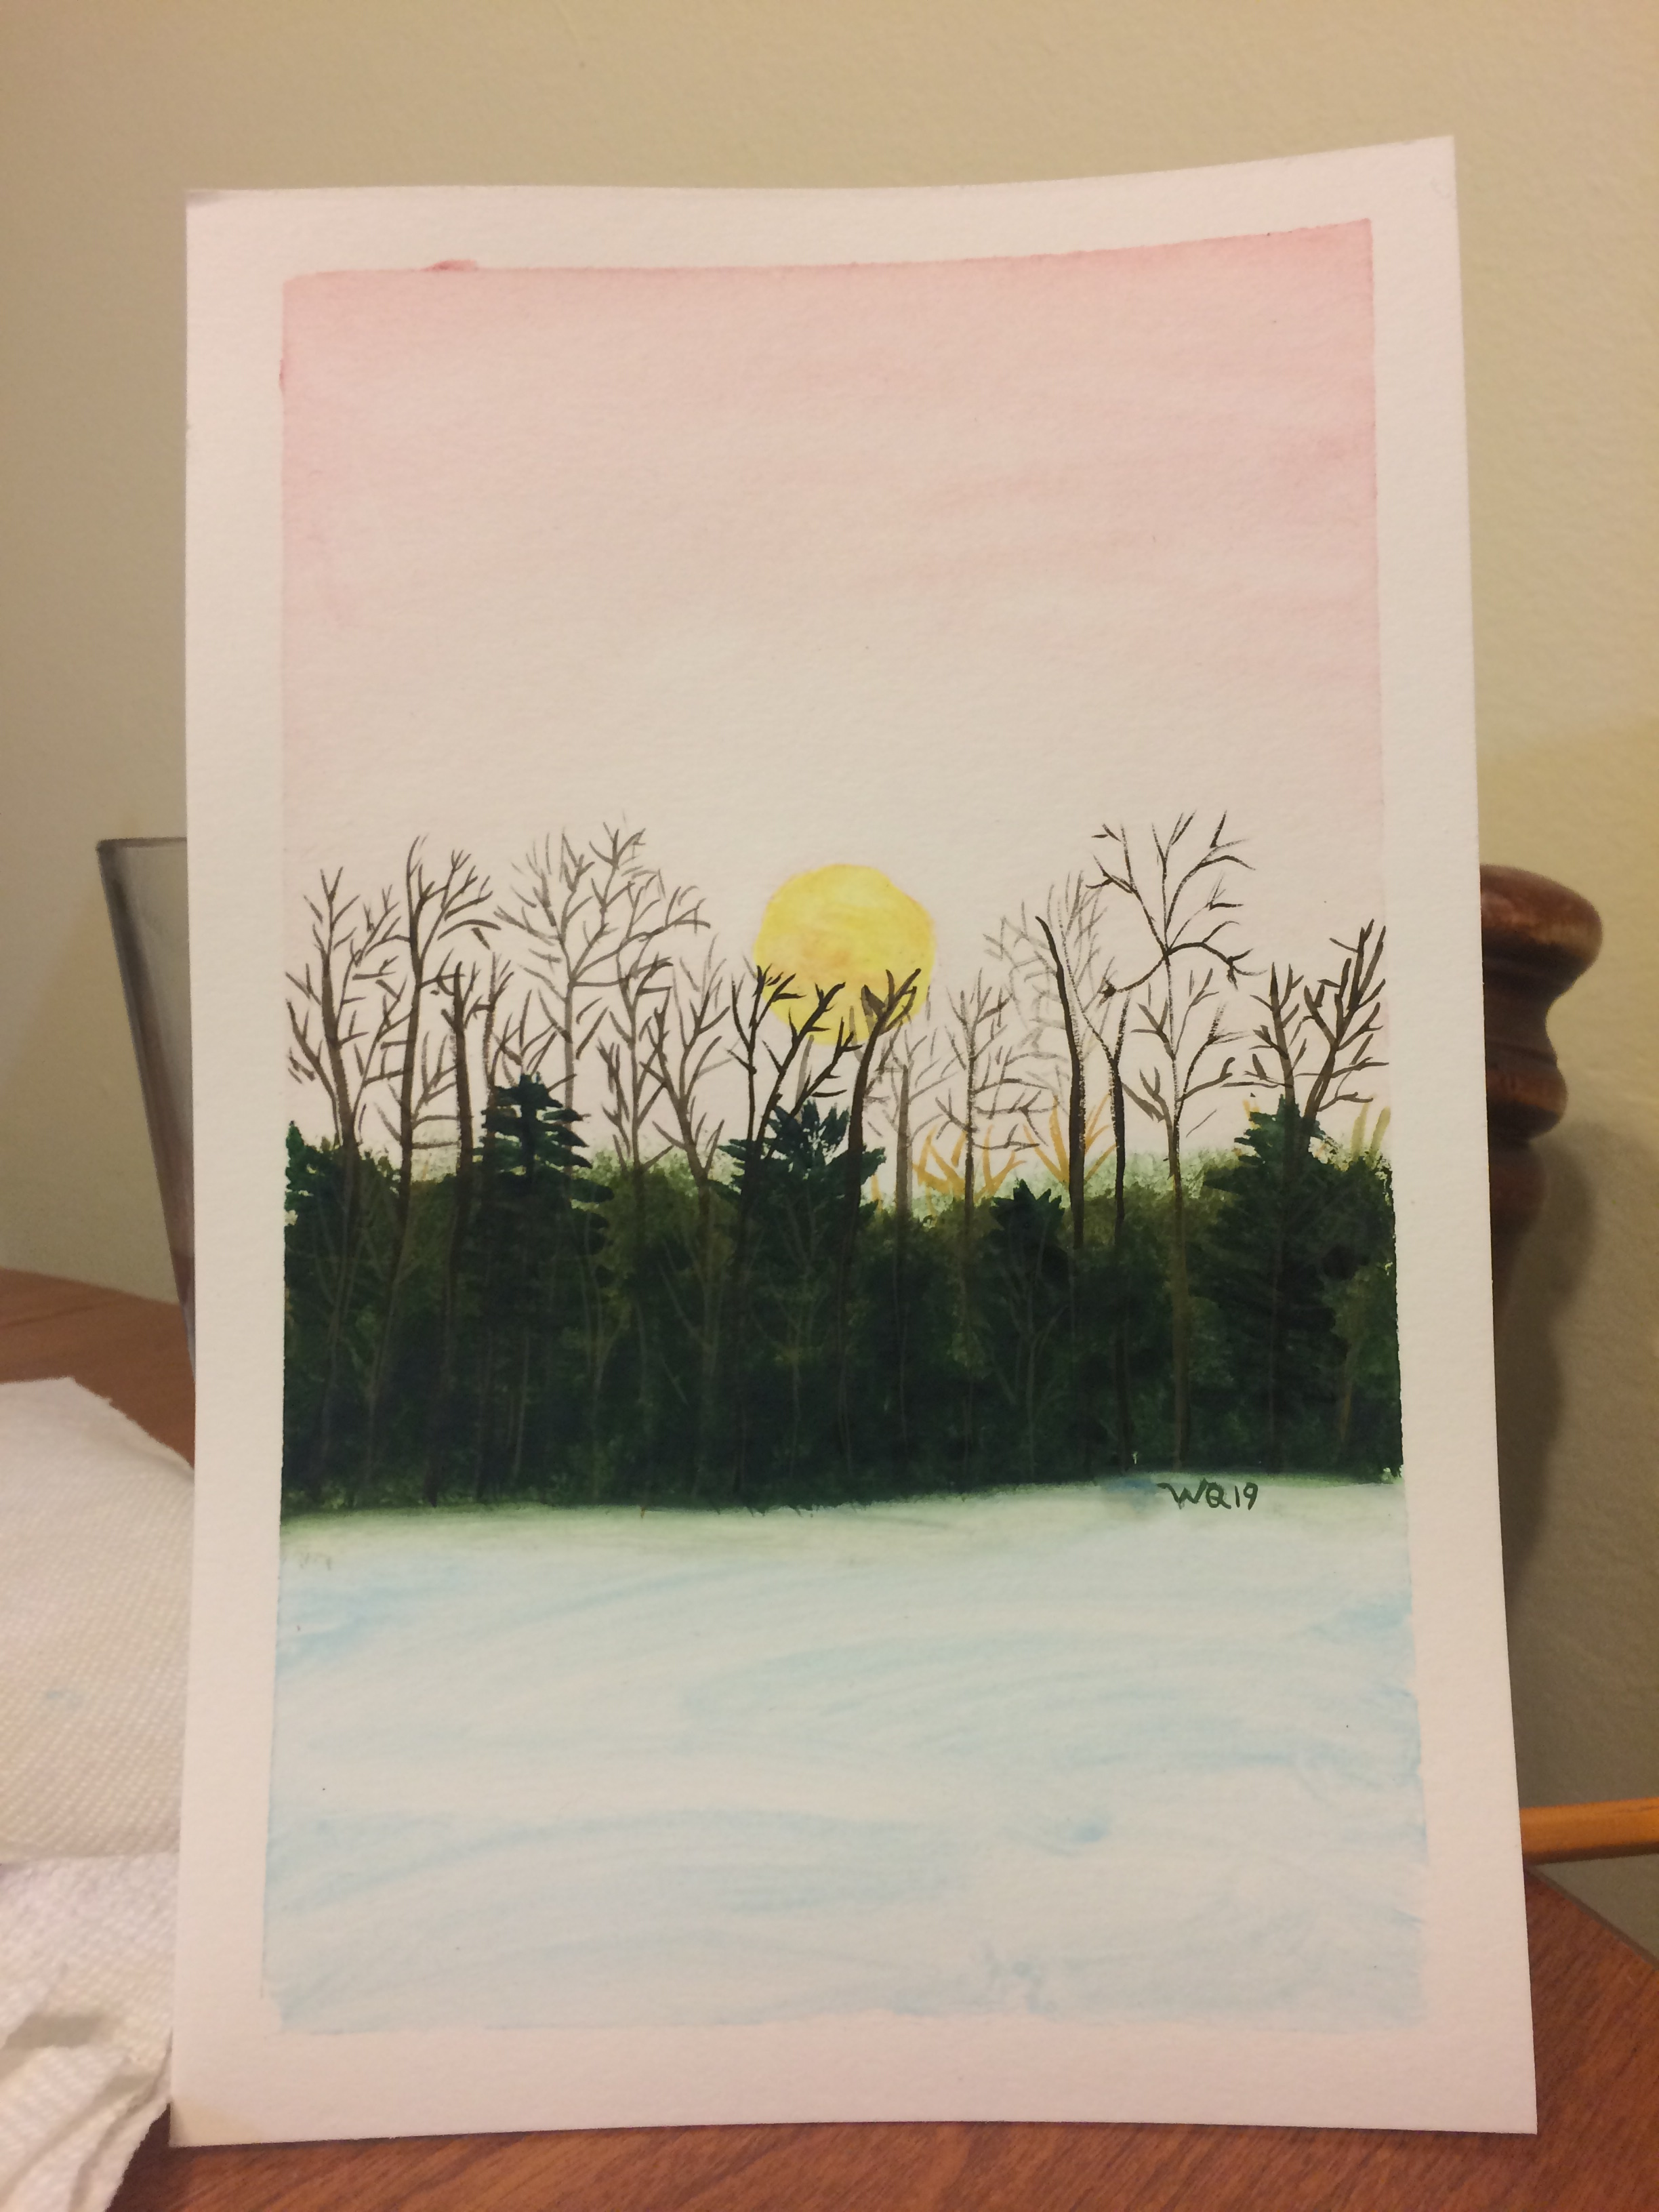 watercolour painting of the full moon setting at sunrise behind trees.